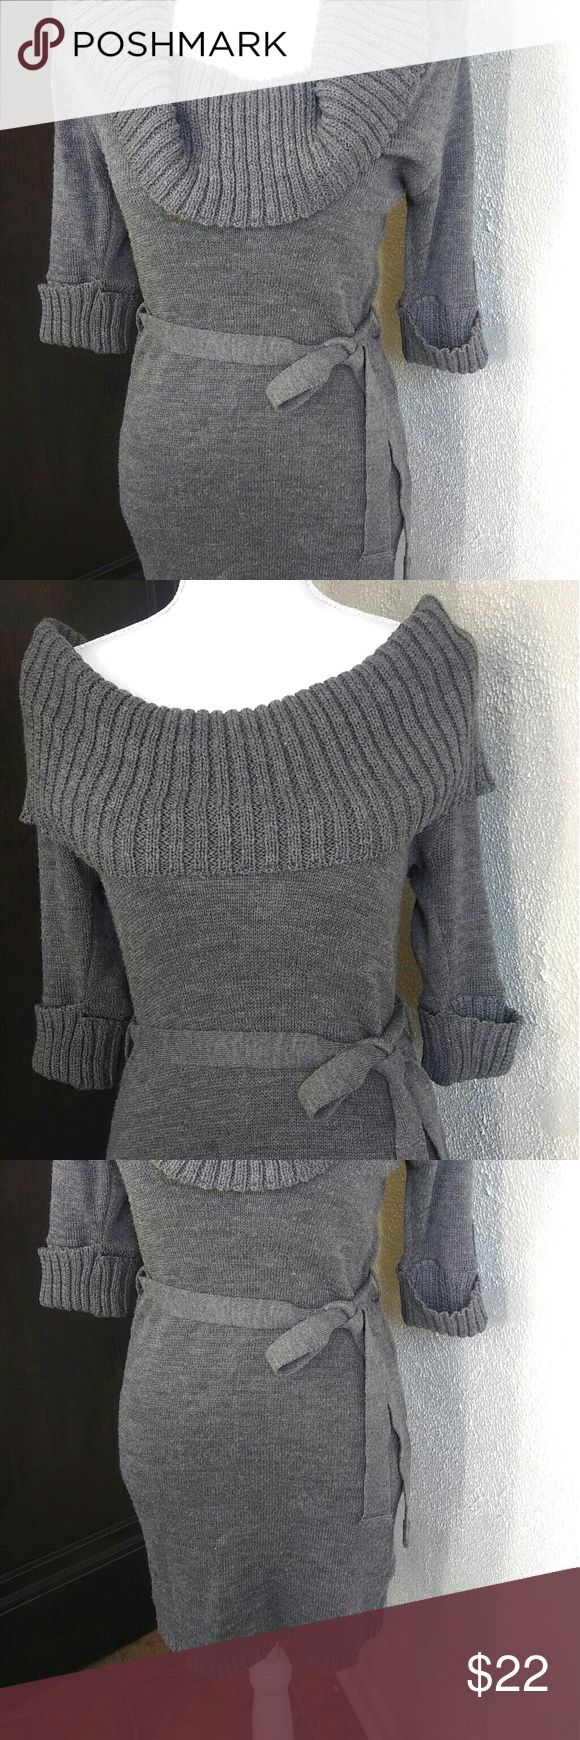 Forever 21 XX1 Cowl Neck Sweater Dress *EUC* Forever 21 XX1 Gray Cowl Neck Sweater Dress. Worn a few times, in very good condition. Cowl neck can be worn off the shoulder or draped in front. Little belt accentuates waist !! Forever 21 Dresses Midi